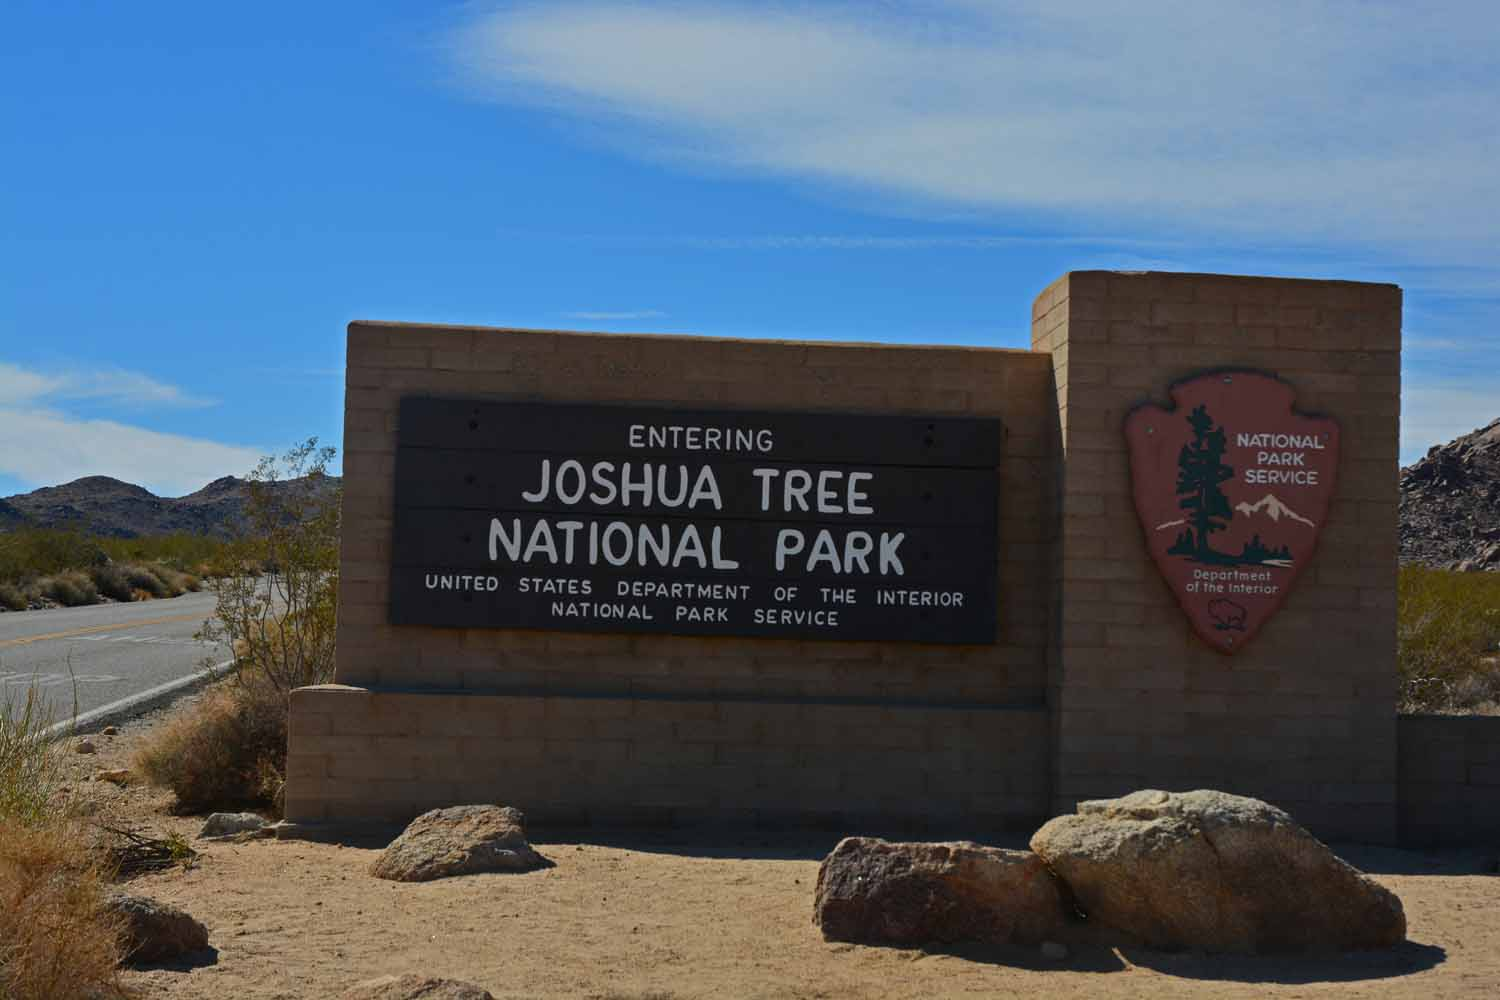 Joshua Tree continues our exploration of National Parks...this was a return visit for us